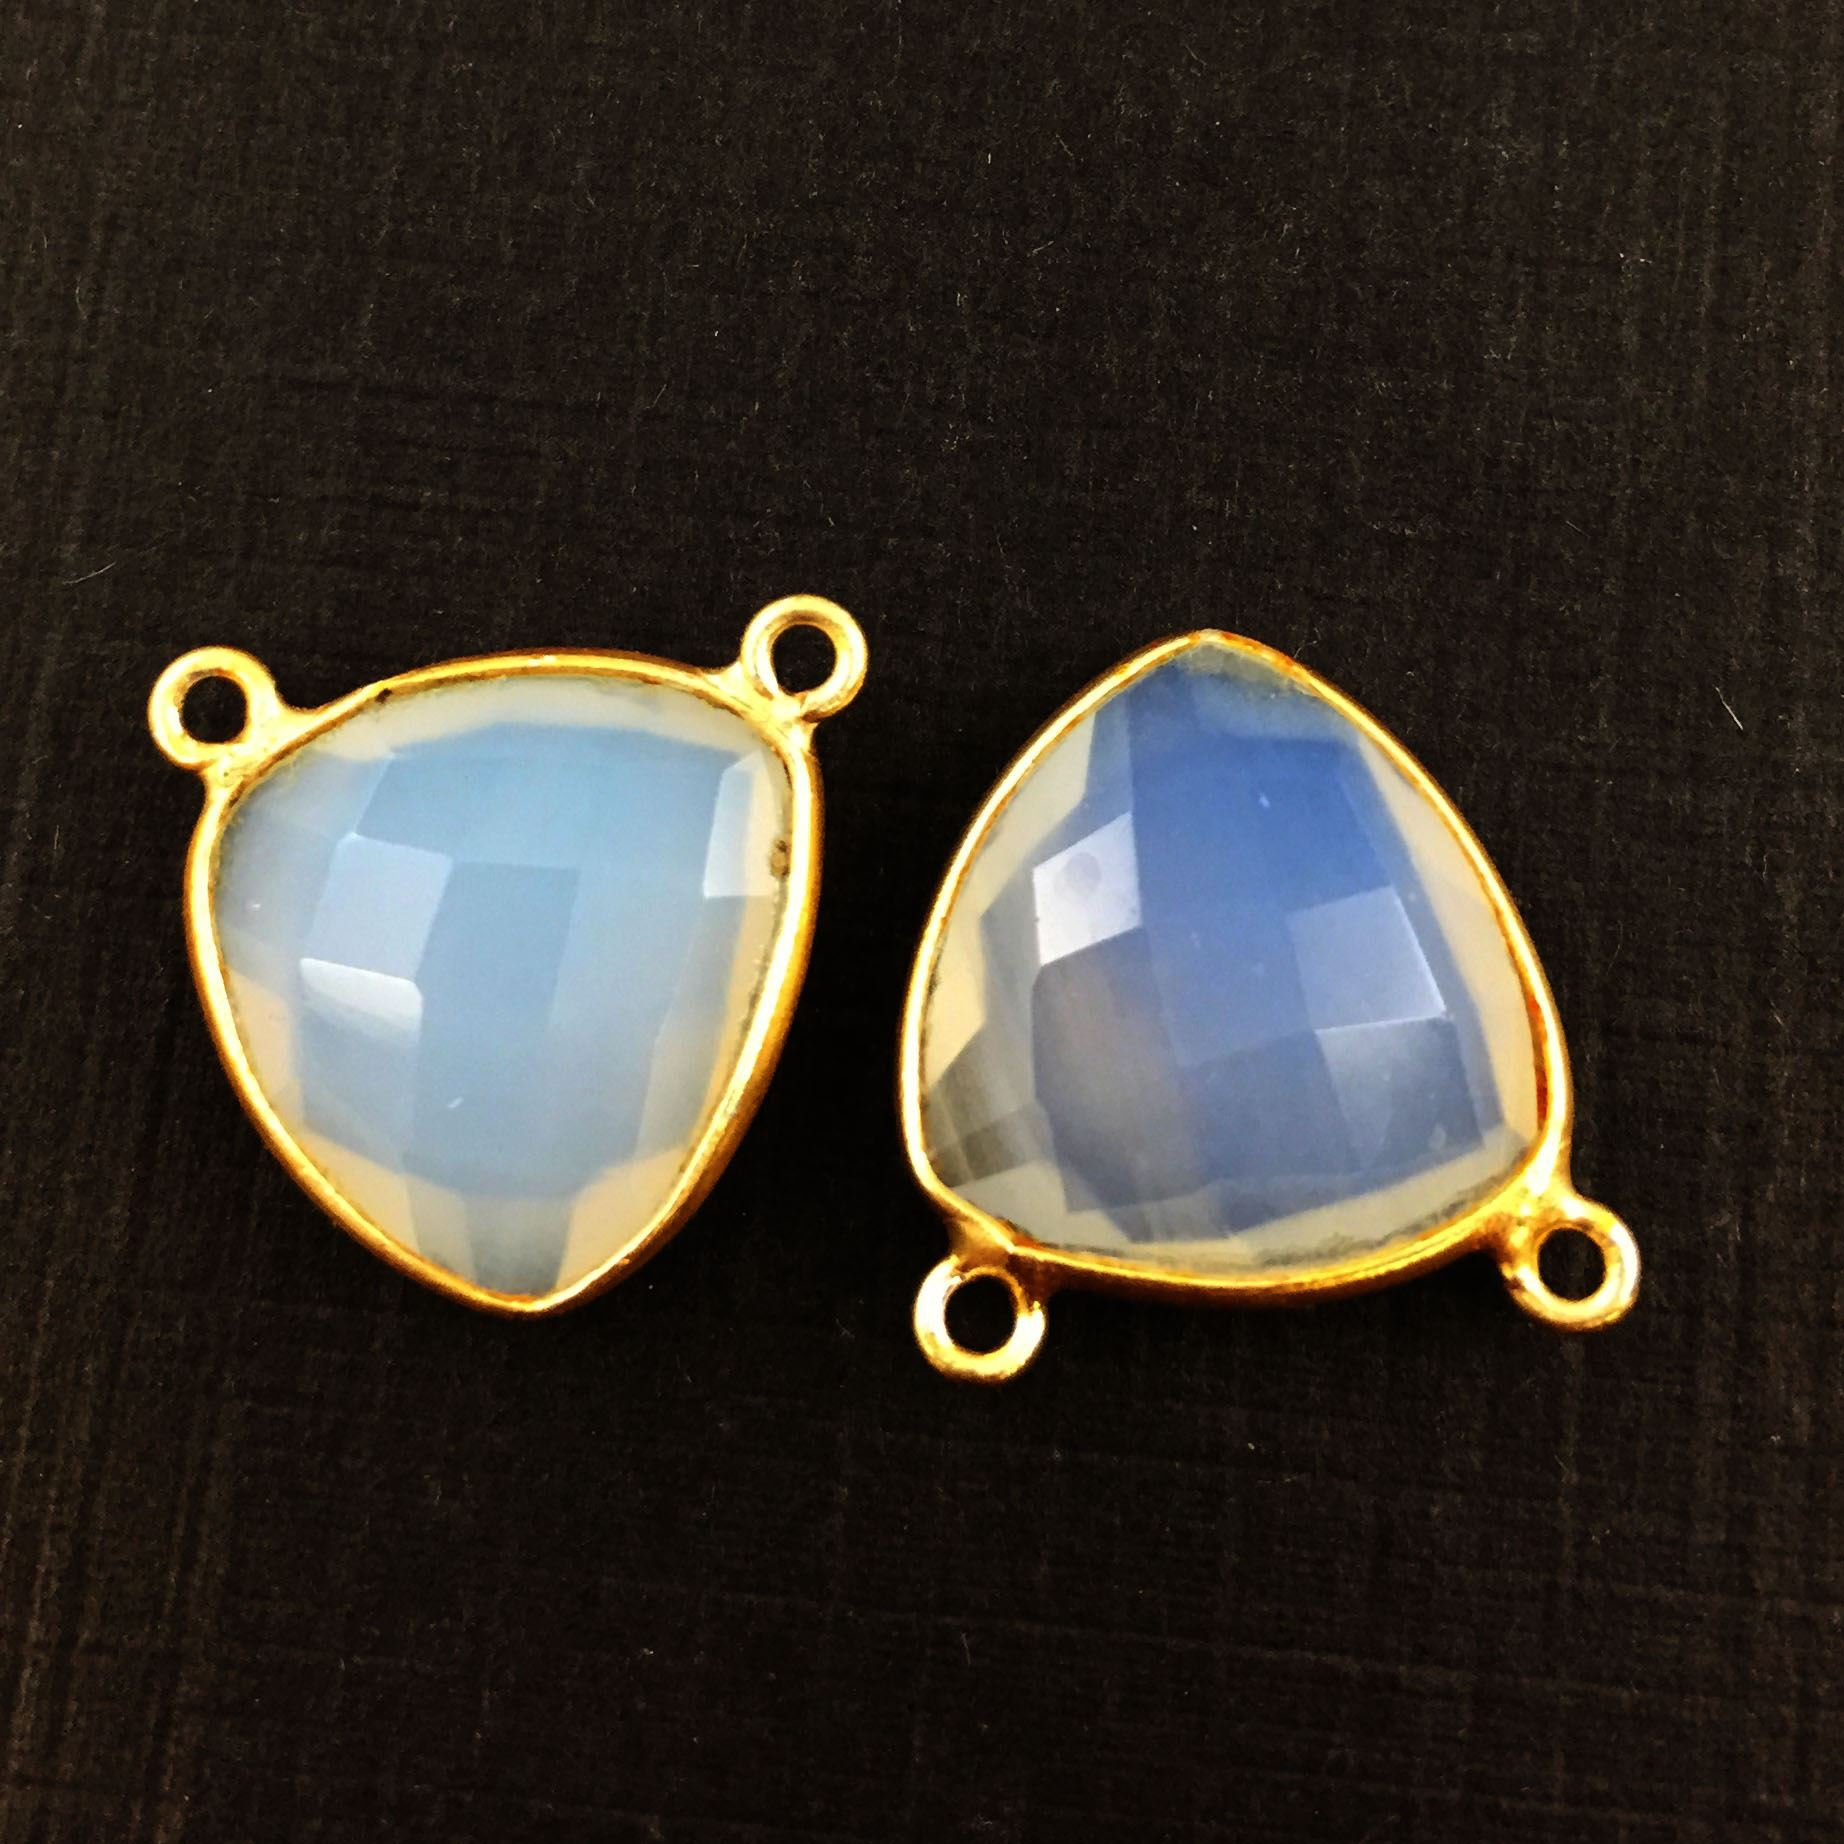 Bezel Gemstone Connector Pendant - Opalite Quartz - Gold plated Sterling Silver - Small Trillion Shaped Faceted - 15mm - 1 piece